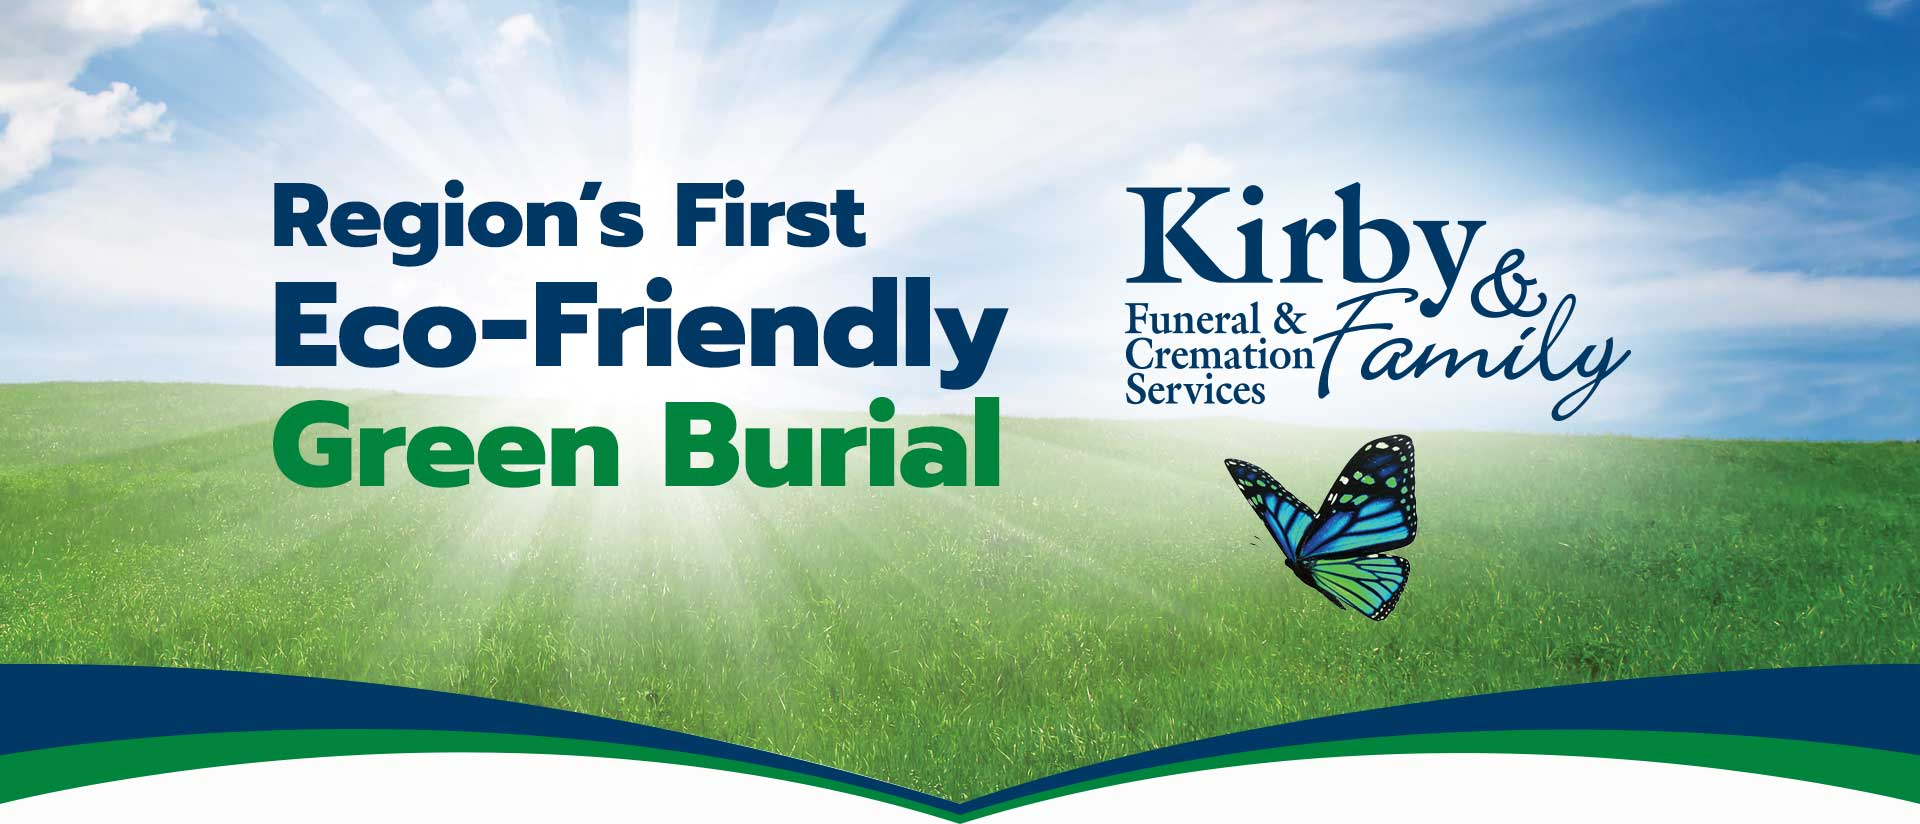 Kirby Funeral and Cremation Services Logo in front of Green Grass and Blue Skies